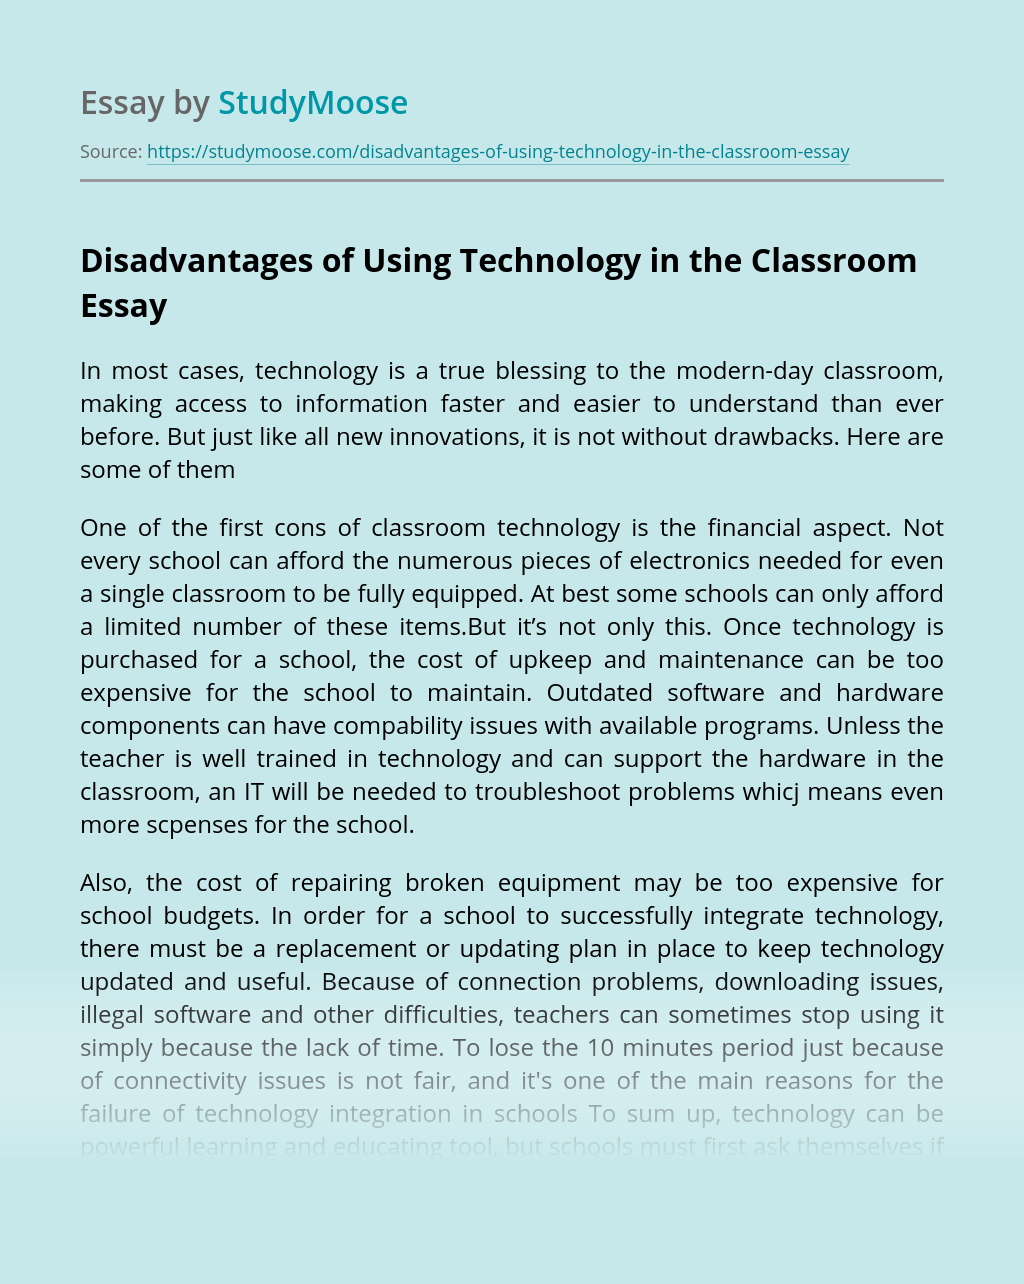 Disadvantages of Using Technology in the Classroom